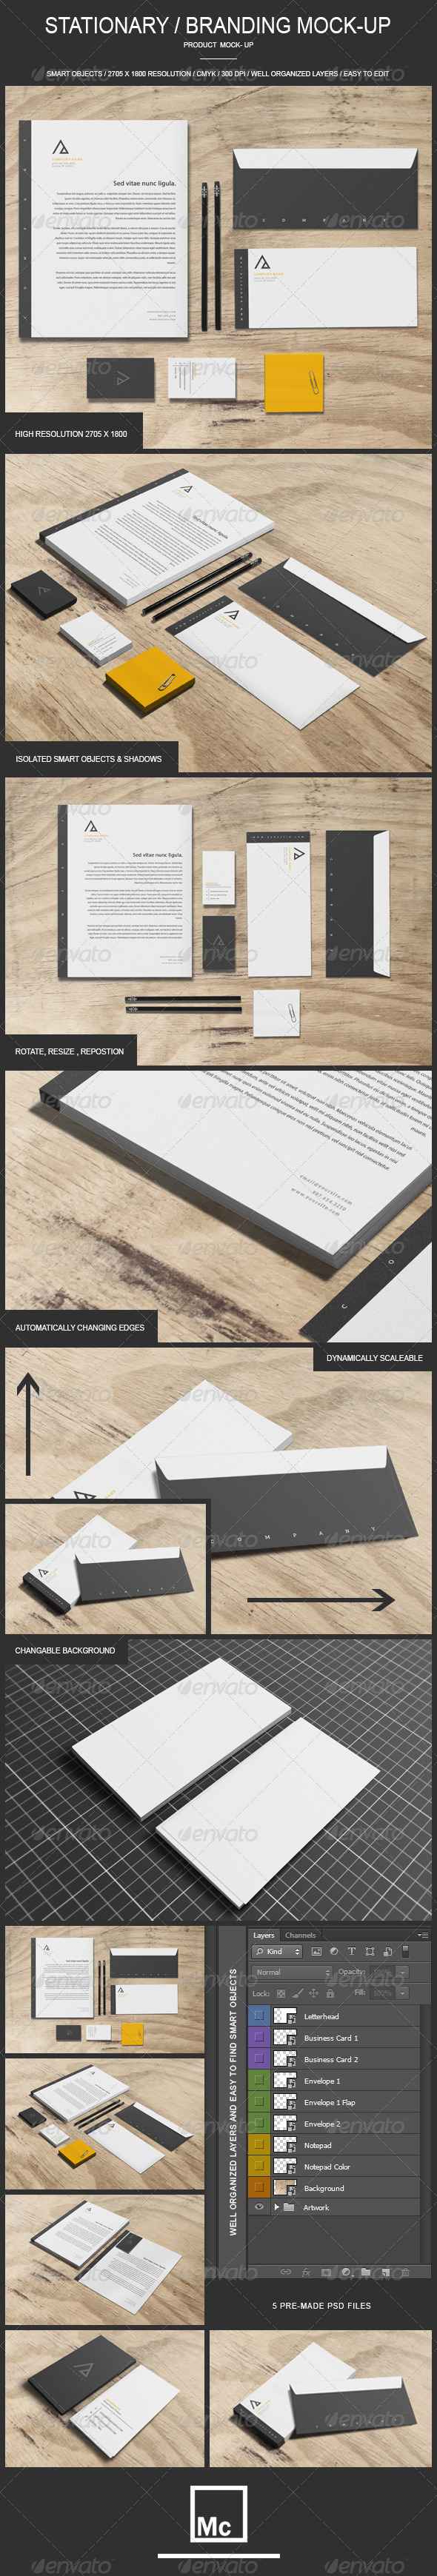 GraphicRiver Stationary Branding Mock-Up 7069054